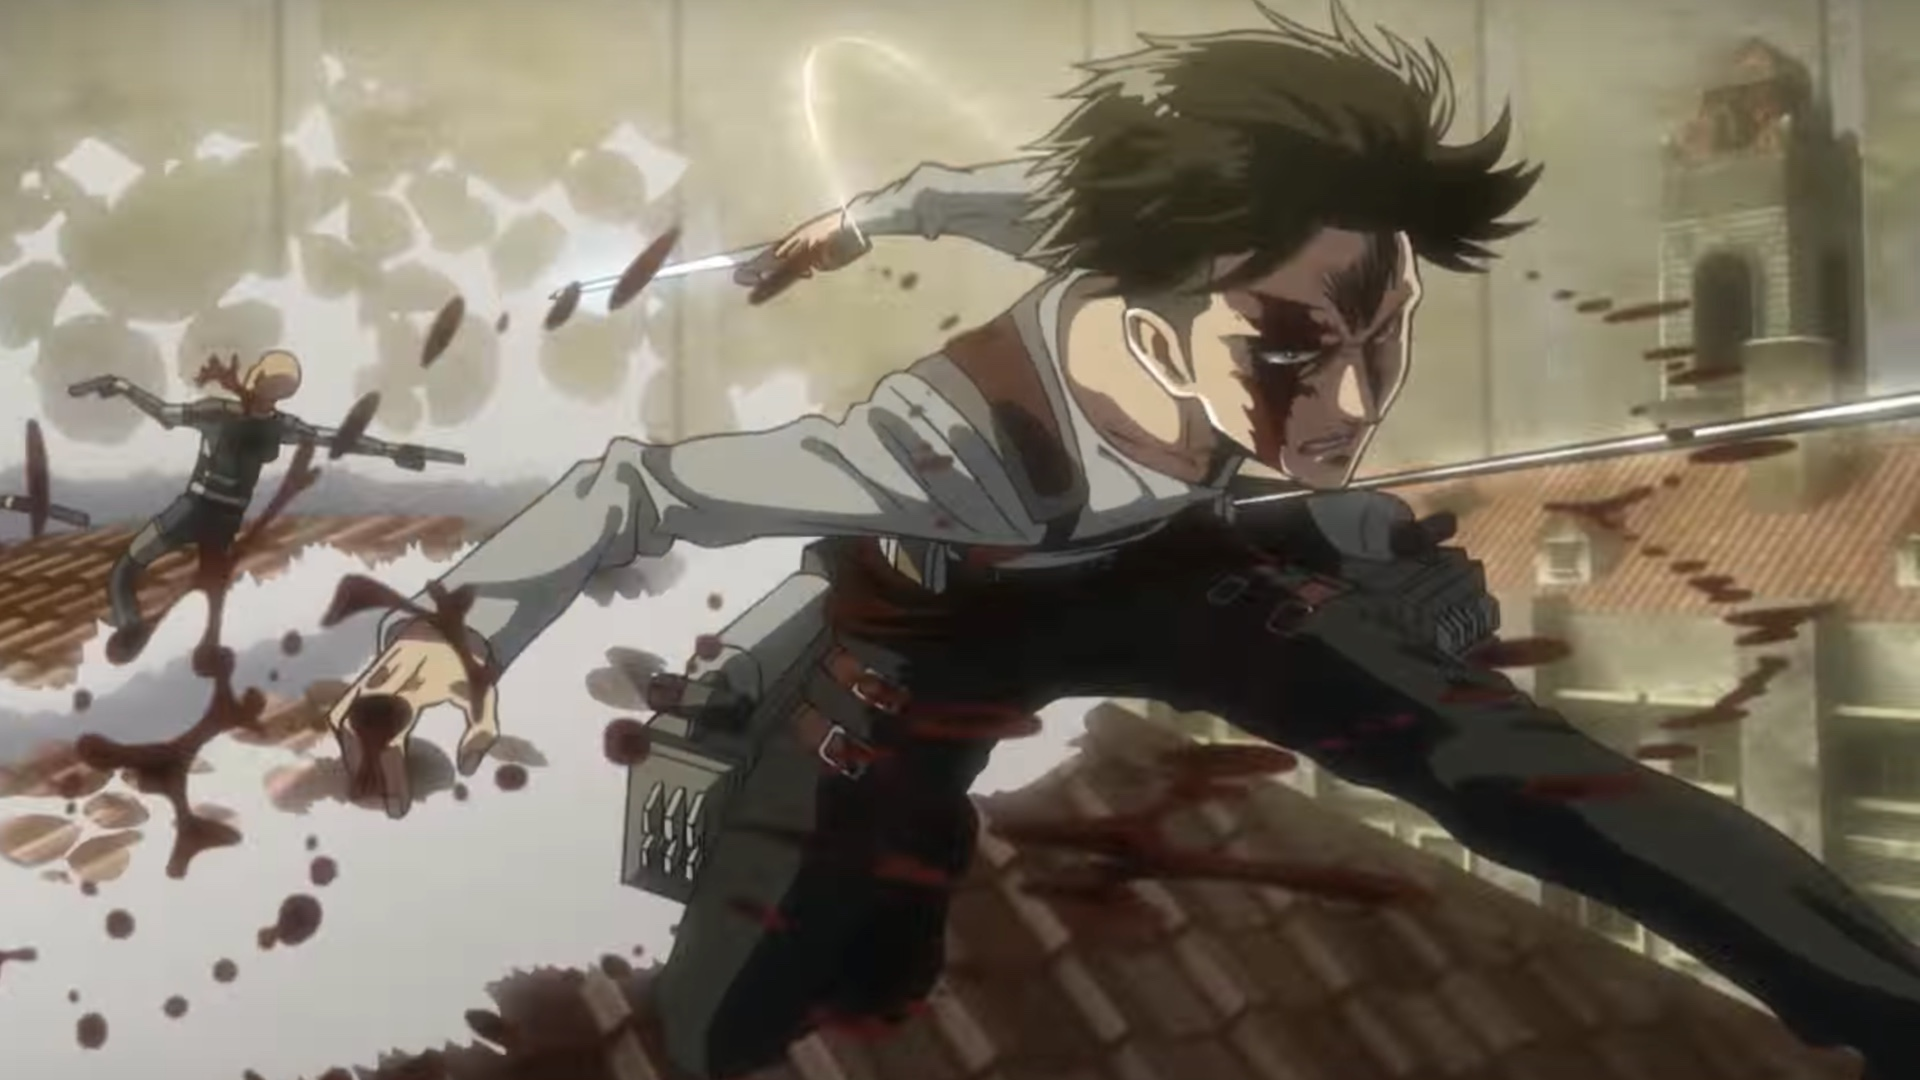 Attack on Titan Season 3 Part 2 Release Date CONFIRMED, streaming schedule also Revealed